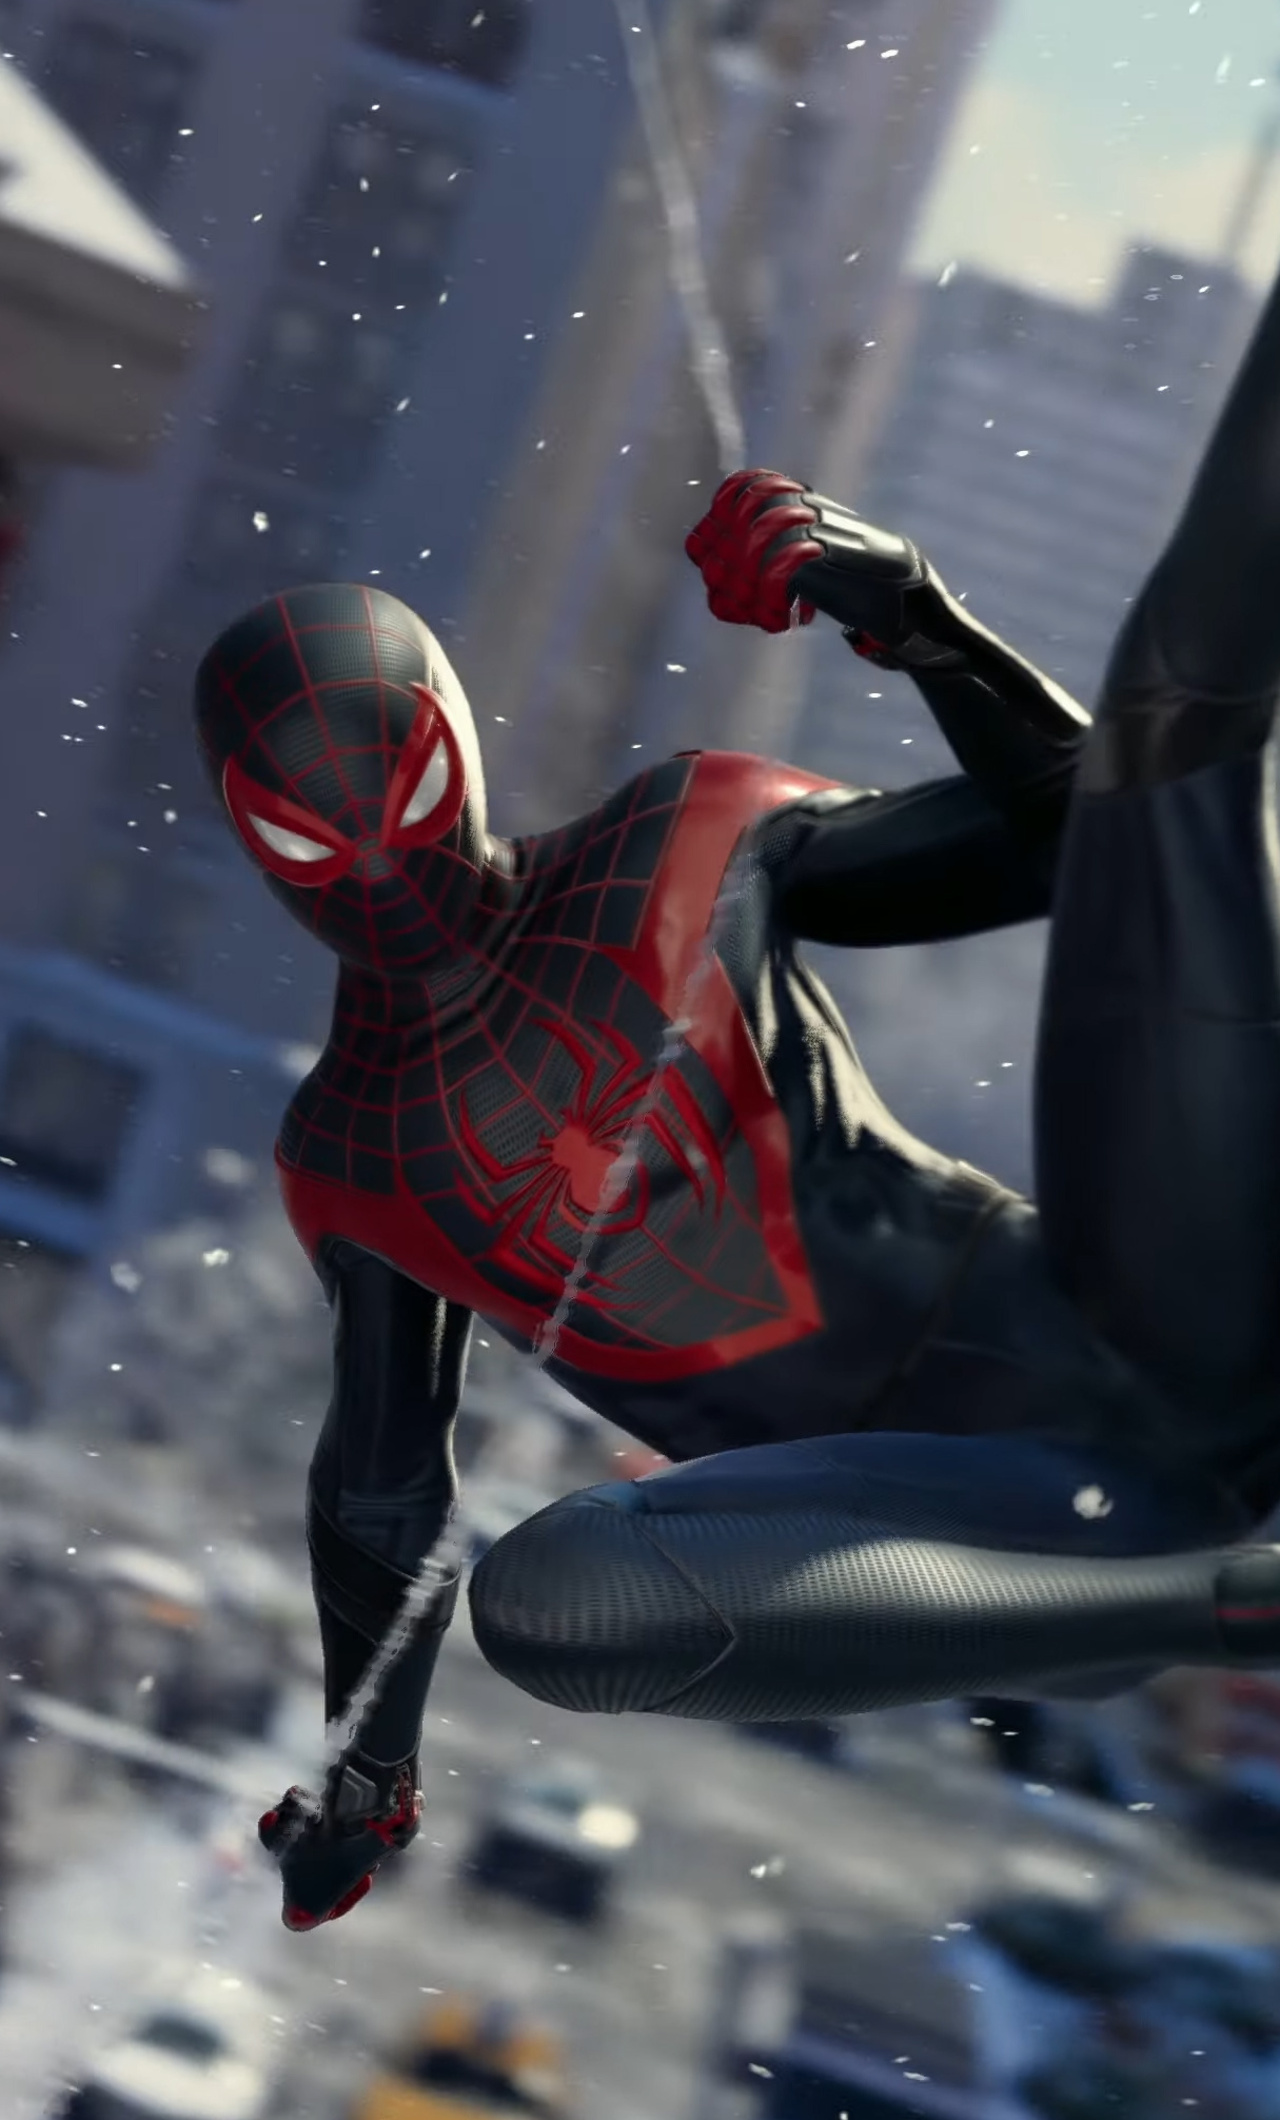 1280x2120 Spider Man Miles Morales Game Iphone 6 Hd 4k Wallpapers Images Backgrounds Photos And Pictures Post your favorite iphone wallpapers here!. 1280x2120 spider man miles morales game